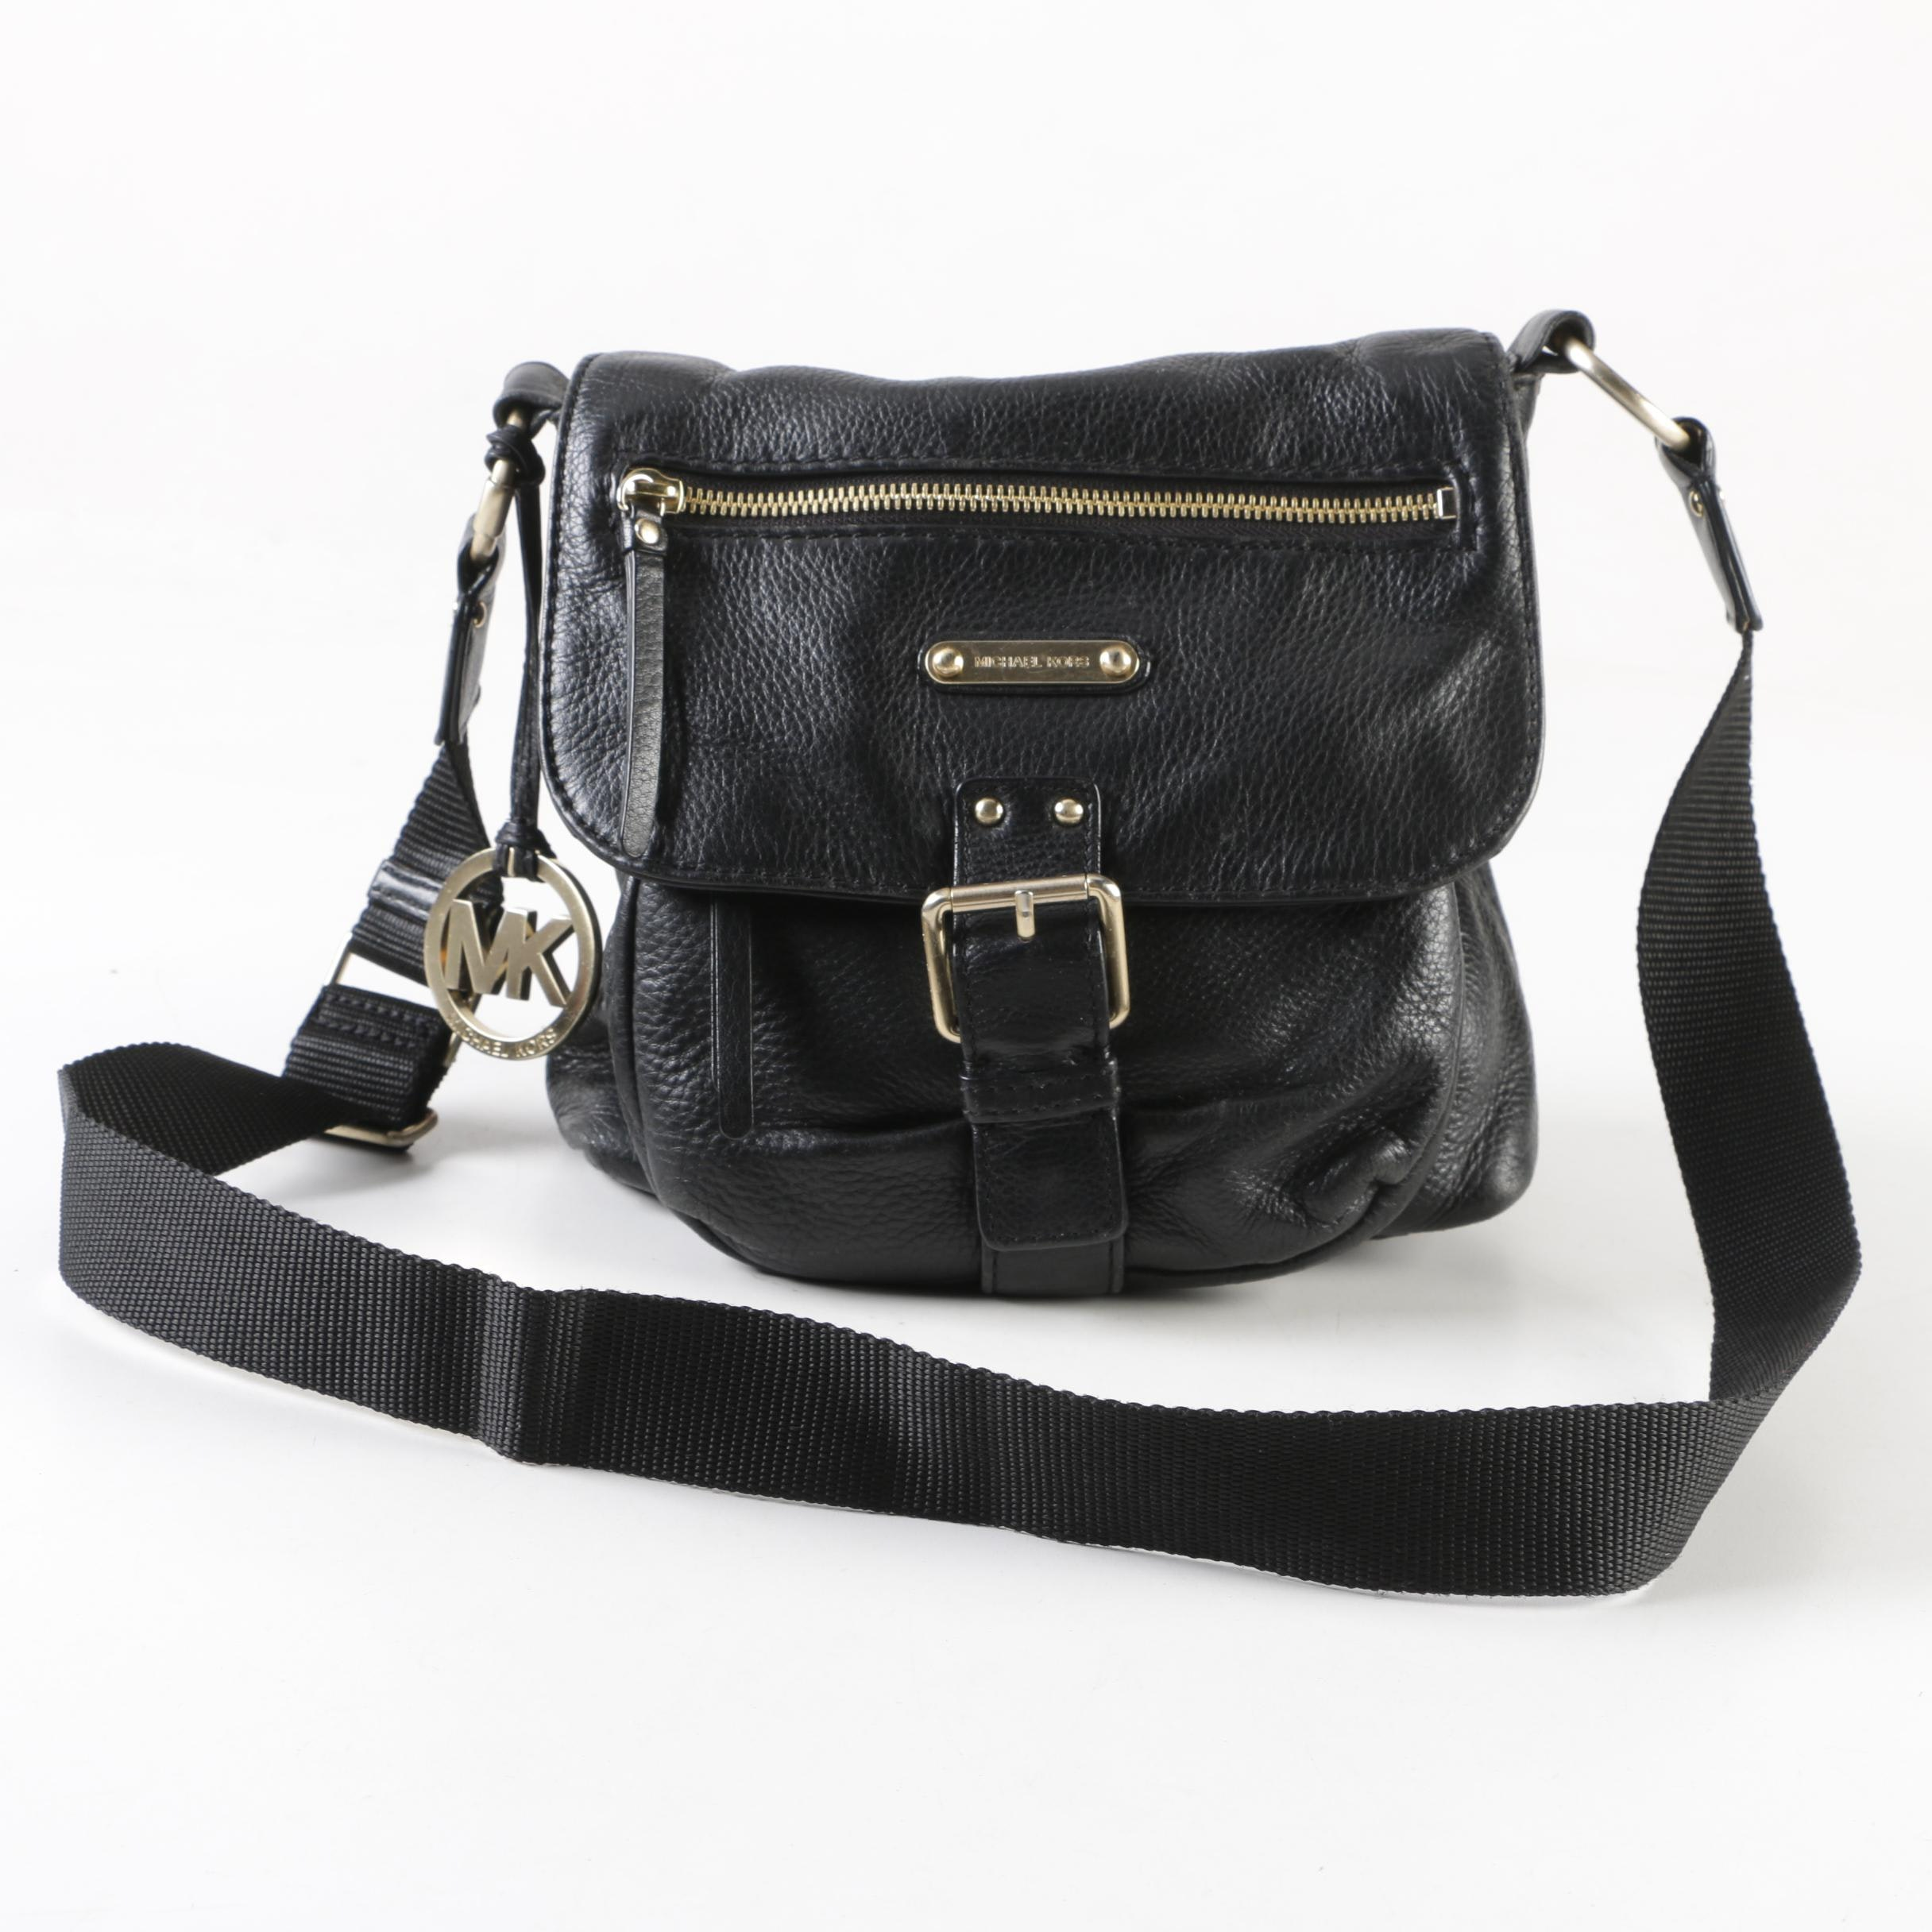 MICHAEL Michael Kors Black Pebbled Leather Shoulder Bag